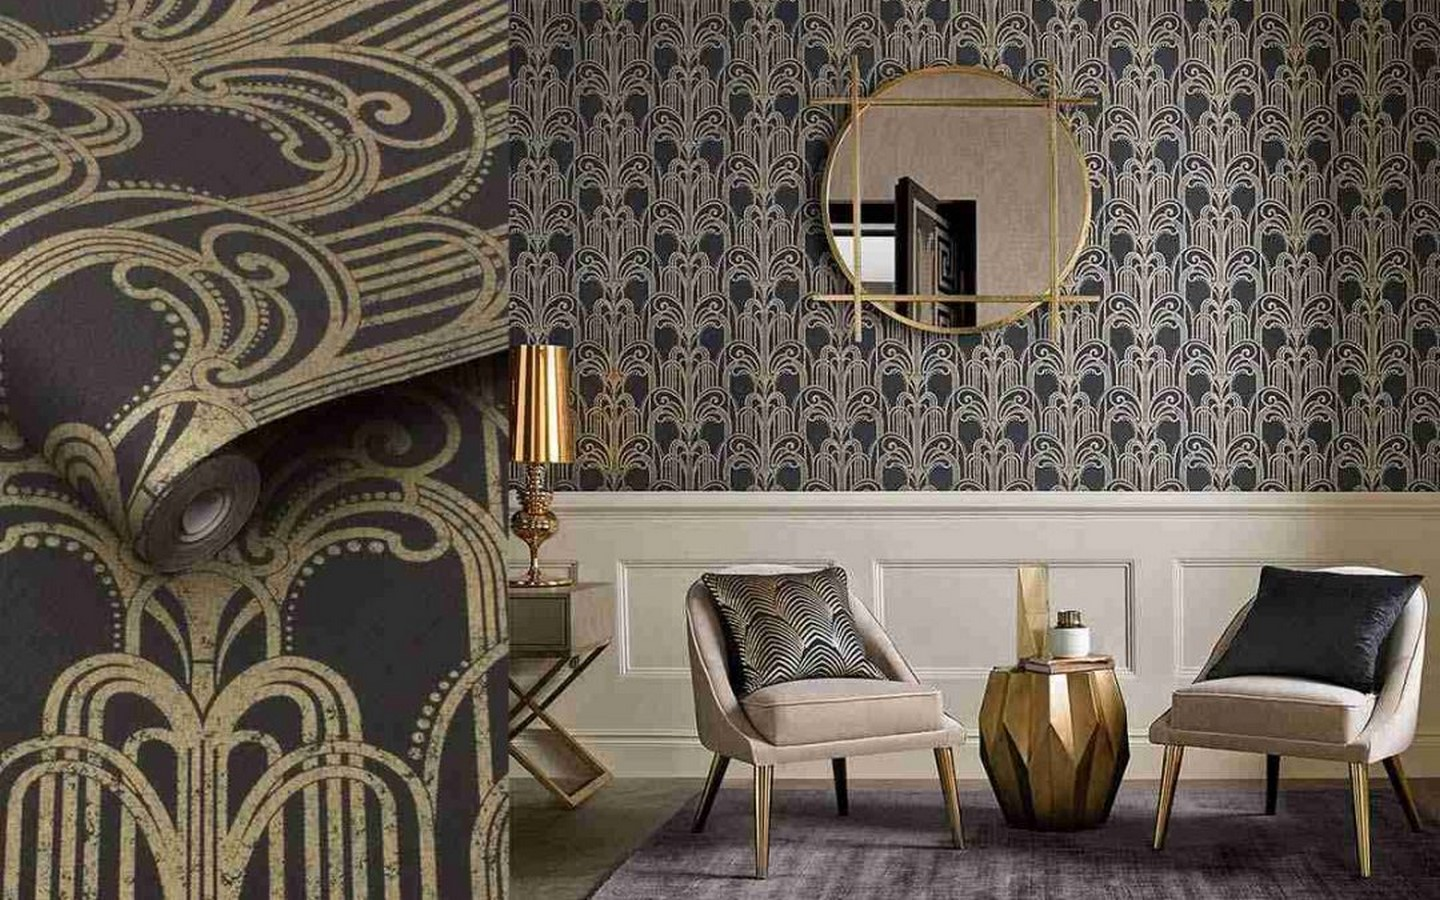 20 Interior Design Trends to look for in 2021 - Sheet10